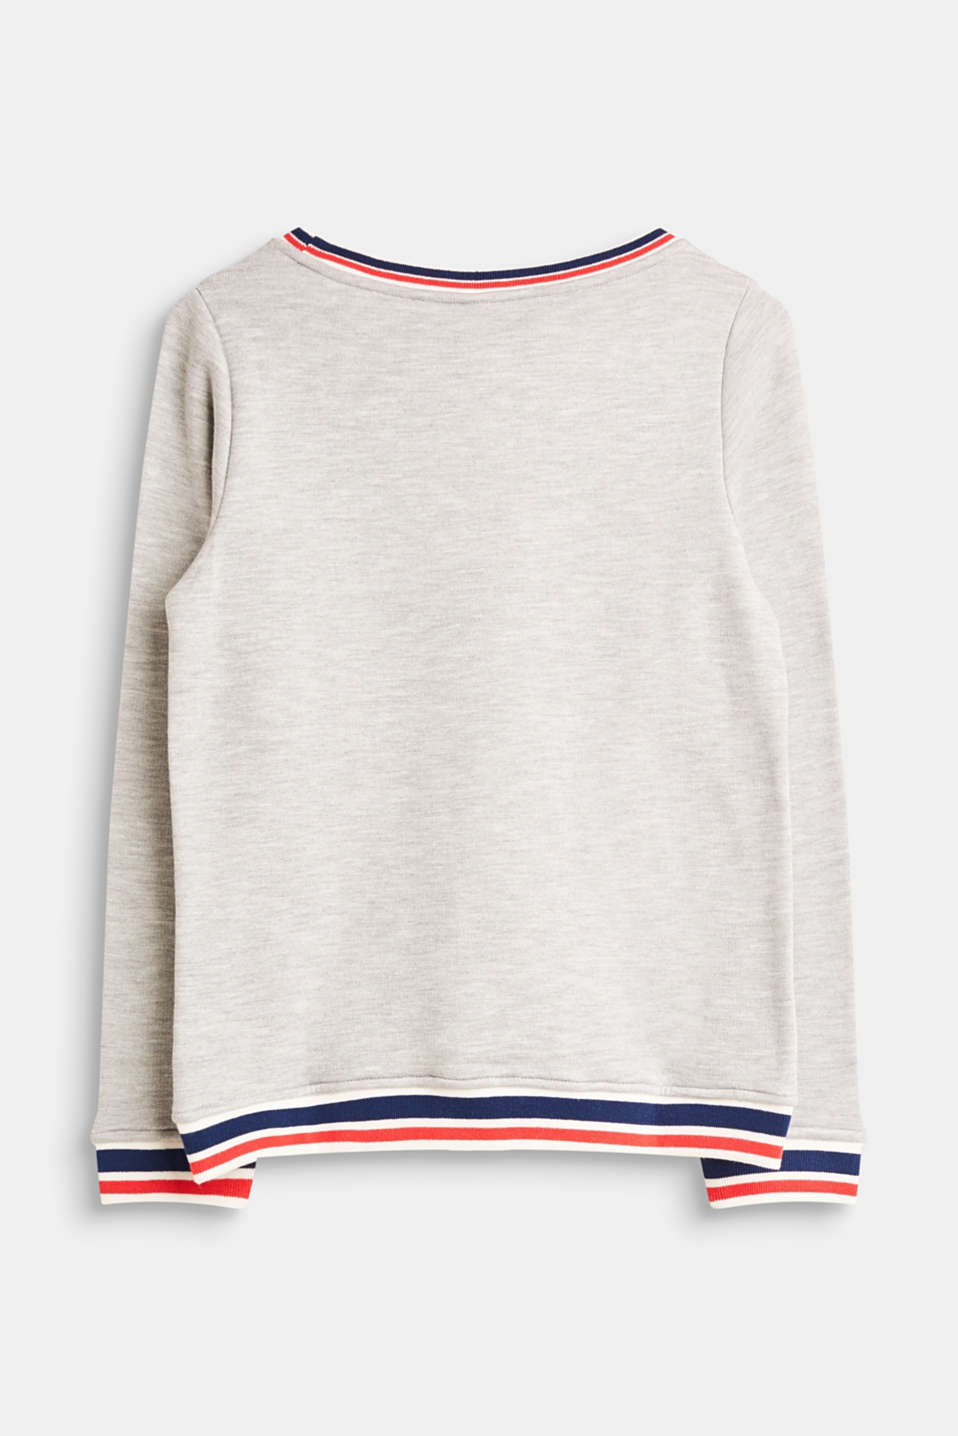 Mottled sweatshirt with striped borders